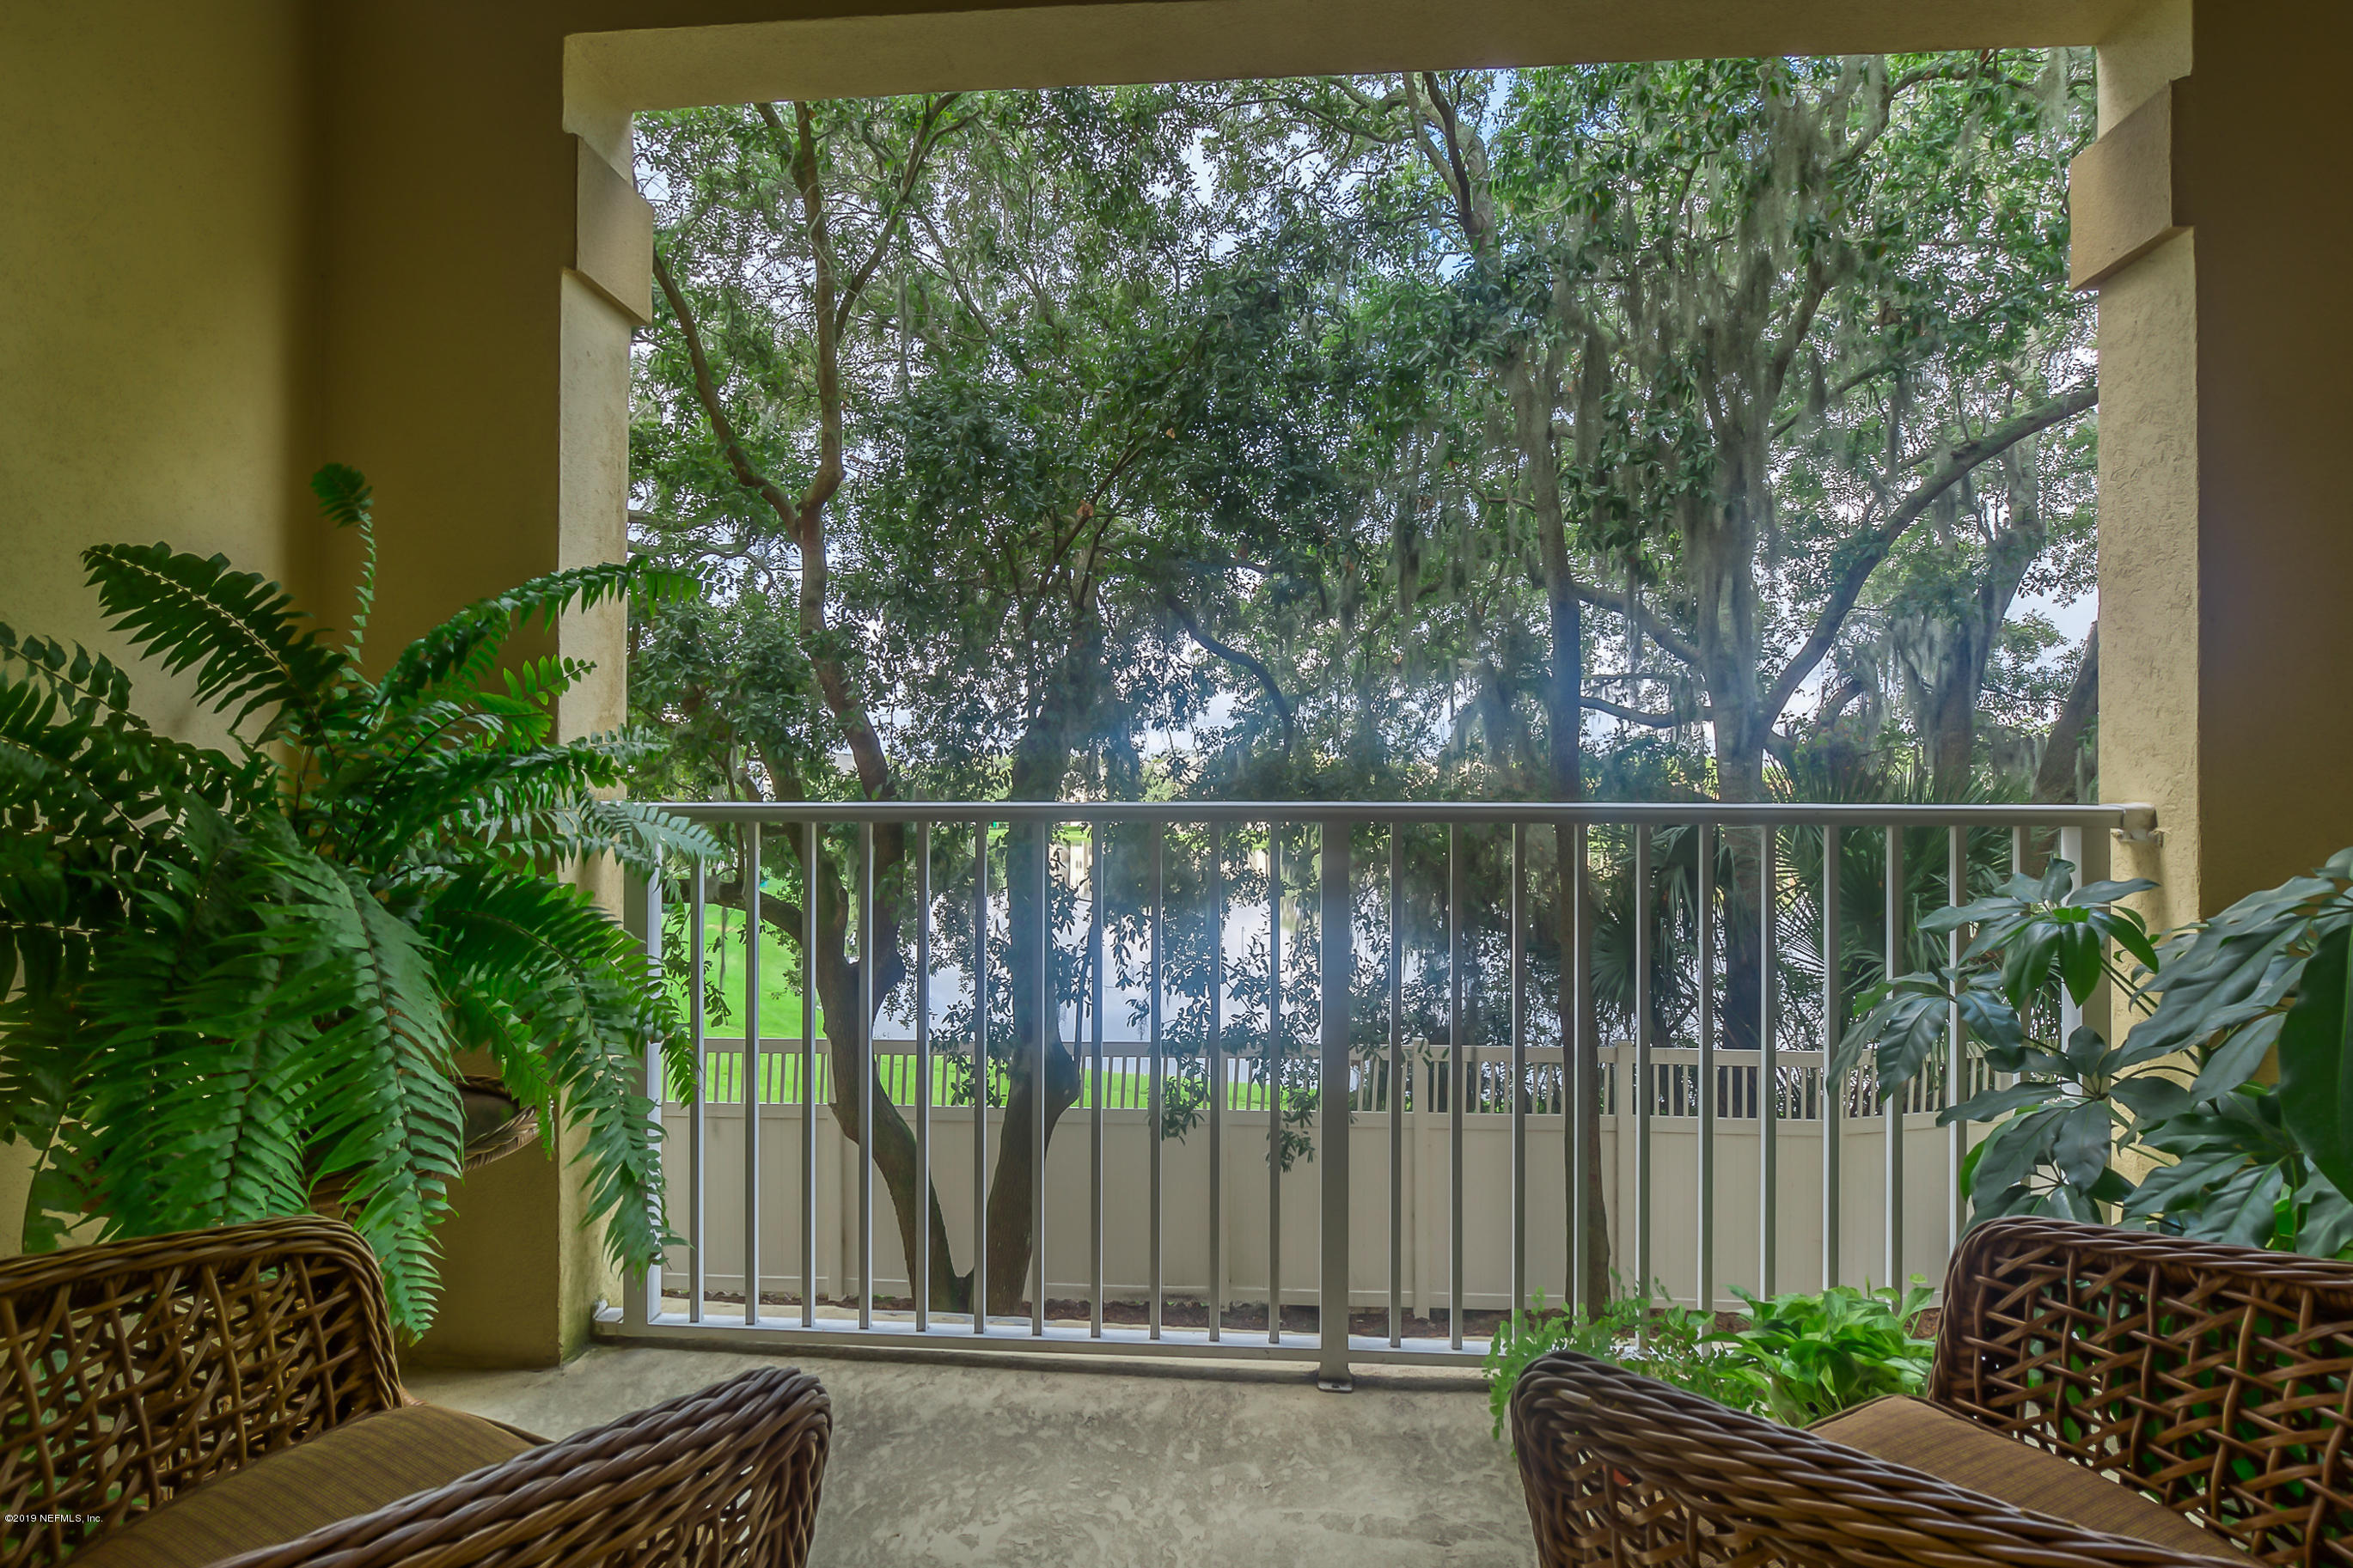 4300 BEACH- JACKSONVILLE BEACH- FLORIDA 32250, 2 Bedrooms Bedrooms, ,2 BathroomsBathrooms,Condo,For sale,BEACH,1022131